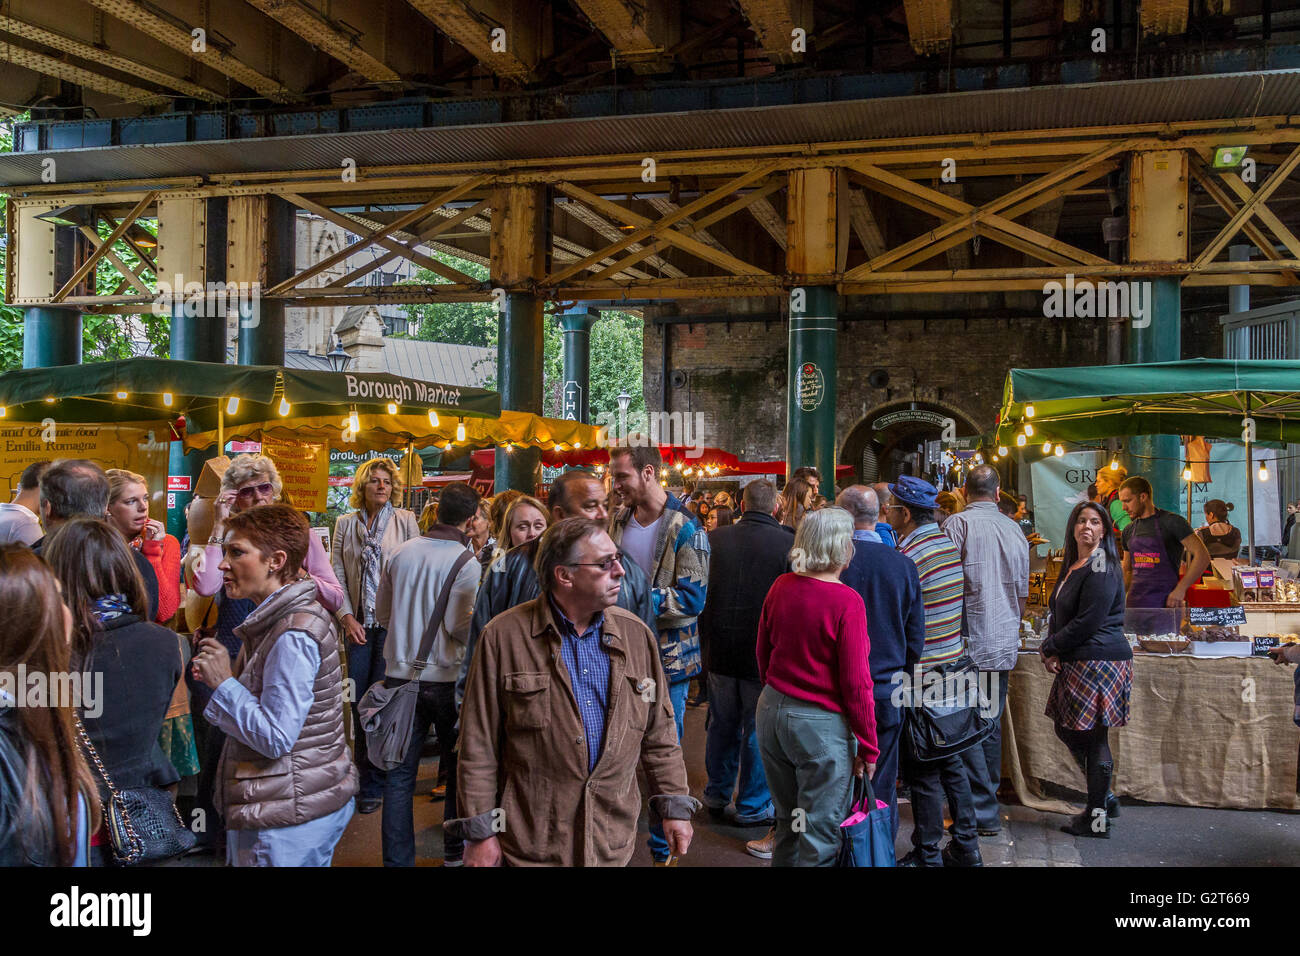 Crowds at  Borough Market ,Bermondsey, London .Borough Market  is London's most renowned food and drink market - Stock Image